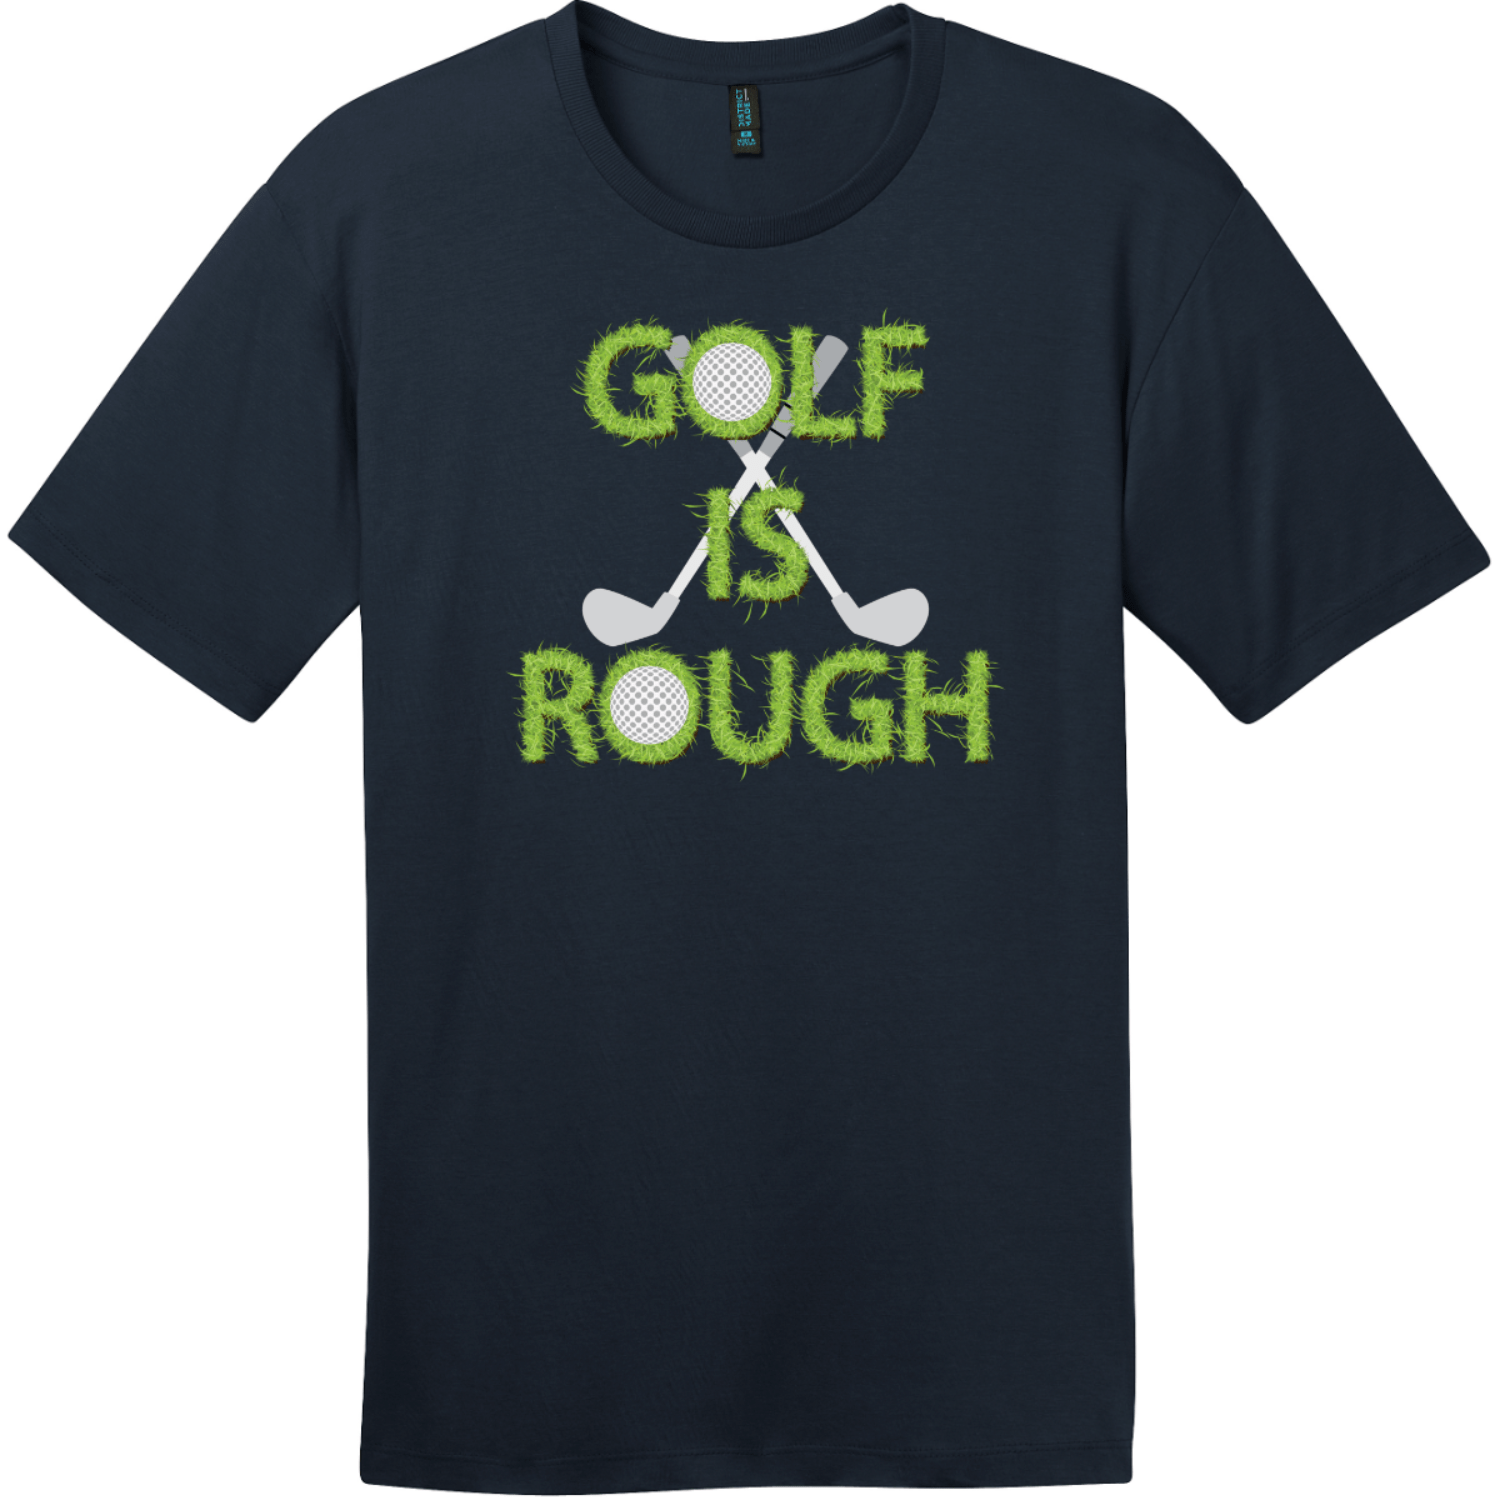 Golf Is Rough Funny Golf T-Shirt New Navy District Perfect Weight Tee DT104